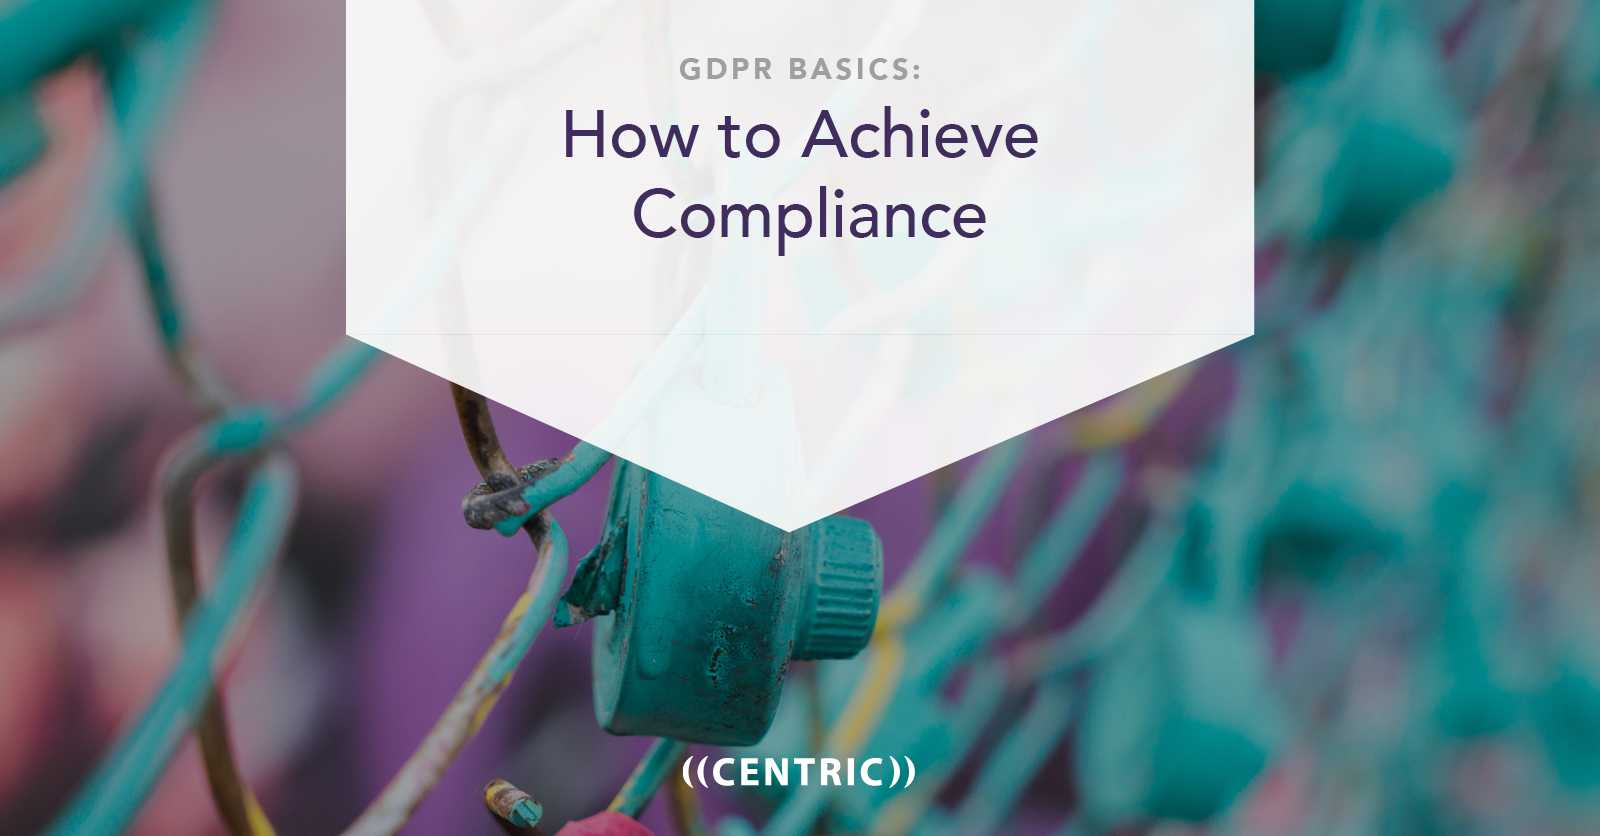 GDPR Basics: How to Achieve Compliance